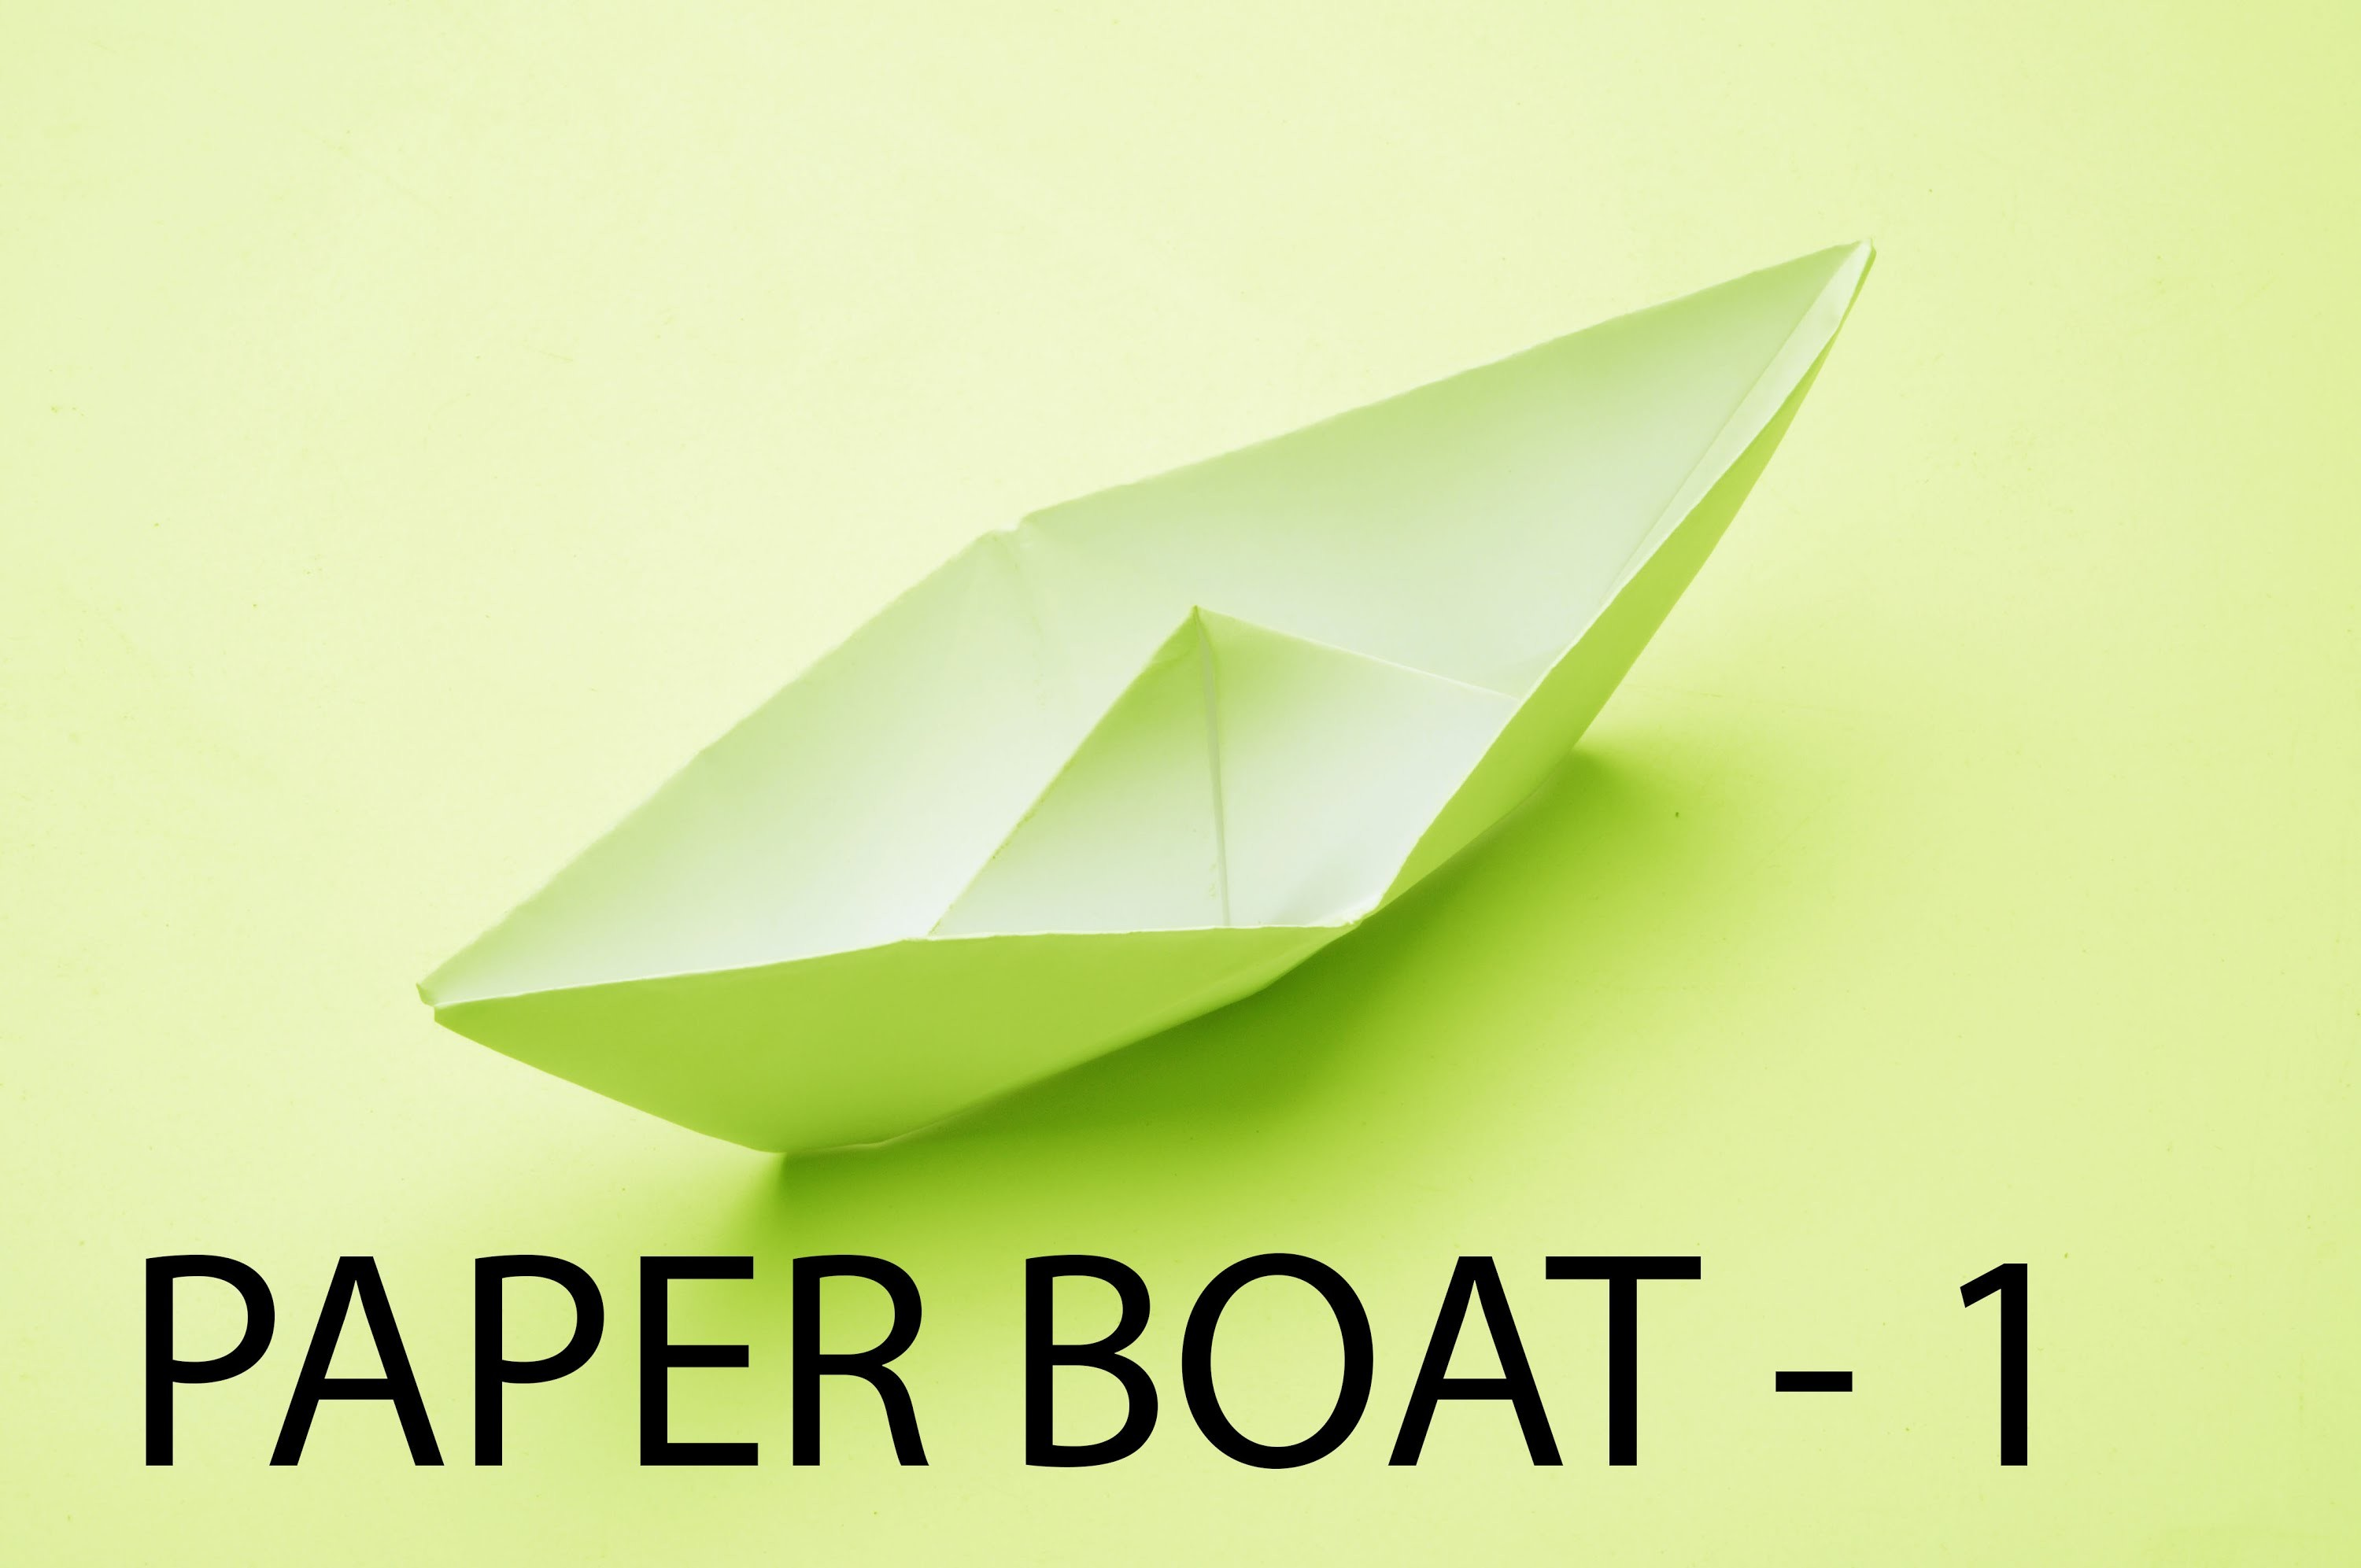 How To Making Paper Boat By Using Paper By Arts & Crafts , Origami